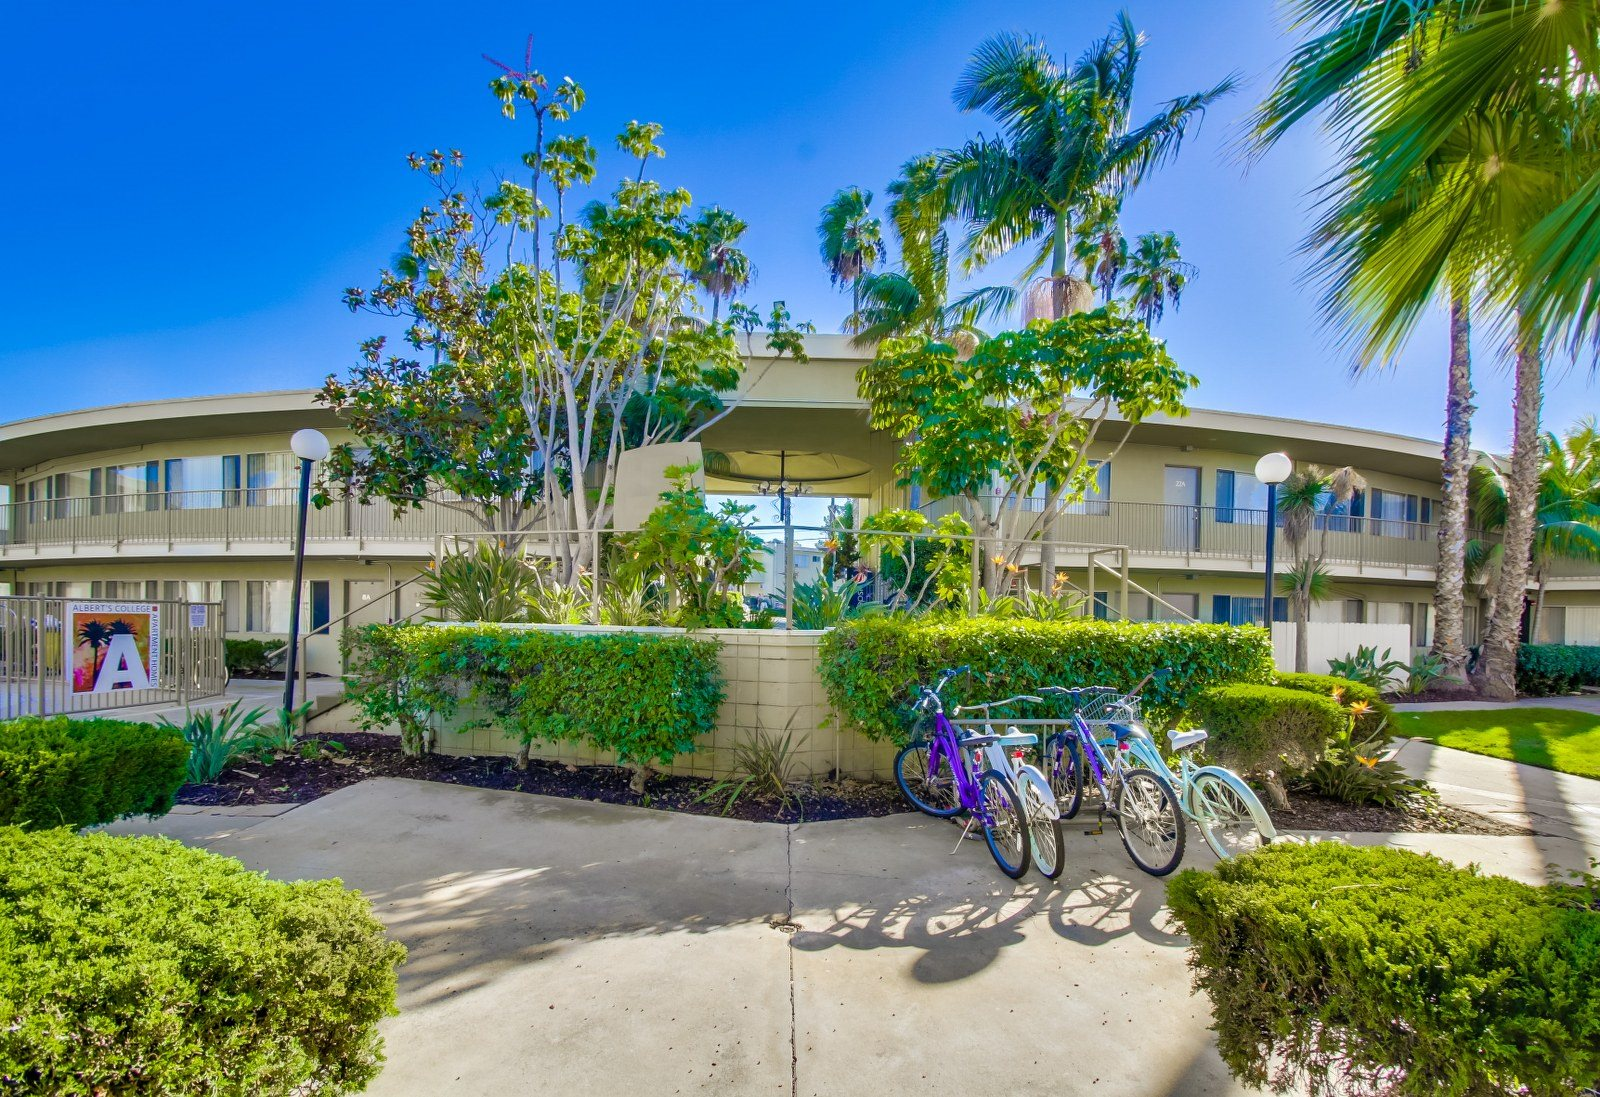 Community Close to Nature at Alberts College Apartments, 5460 55th Street, 92115